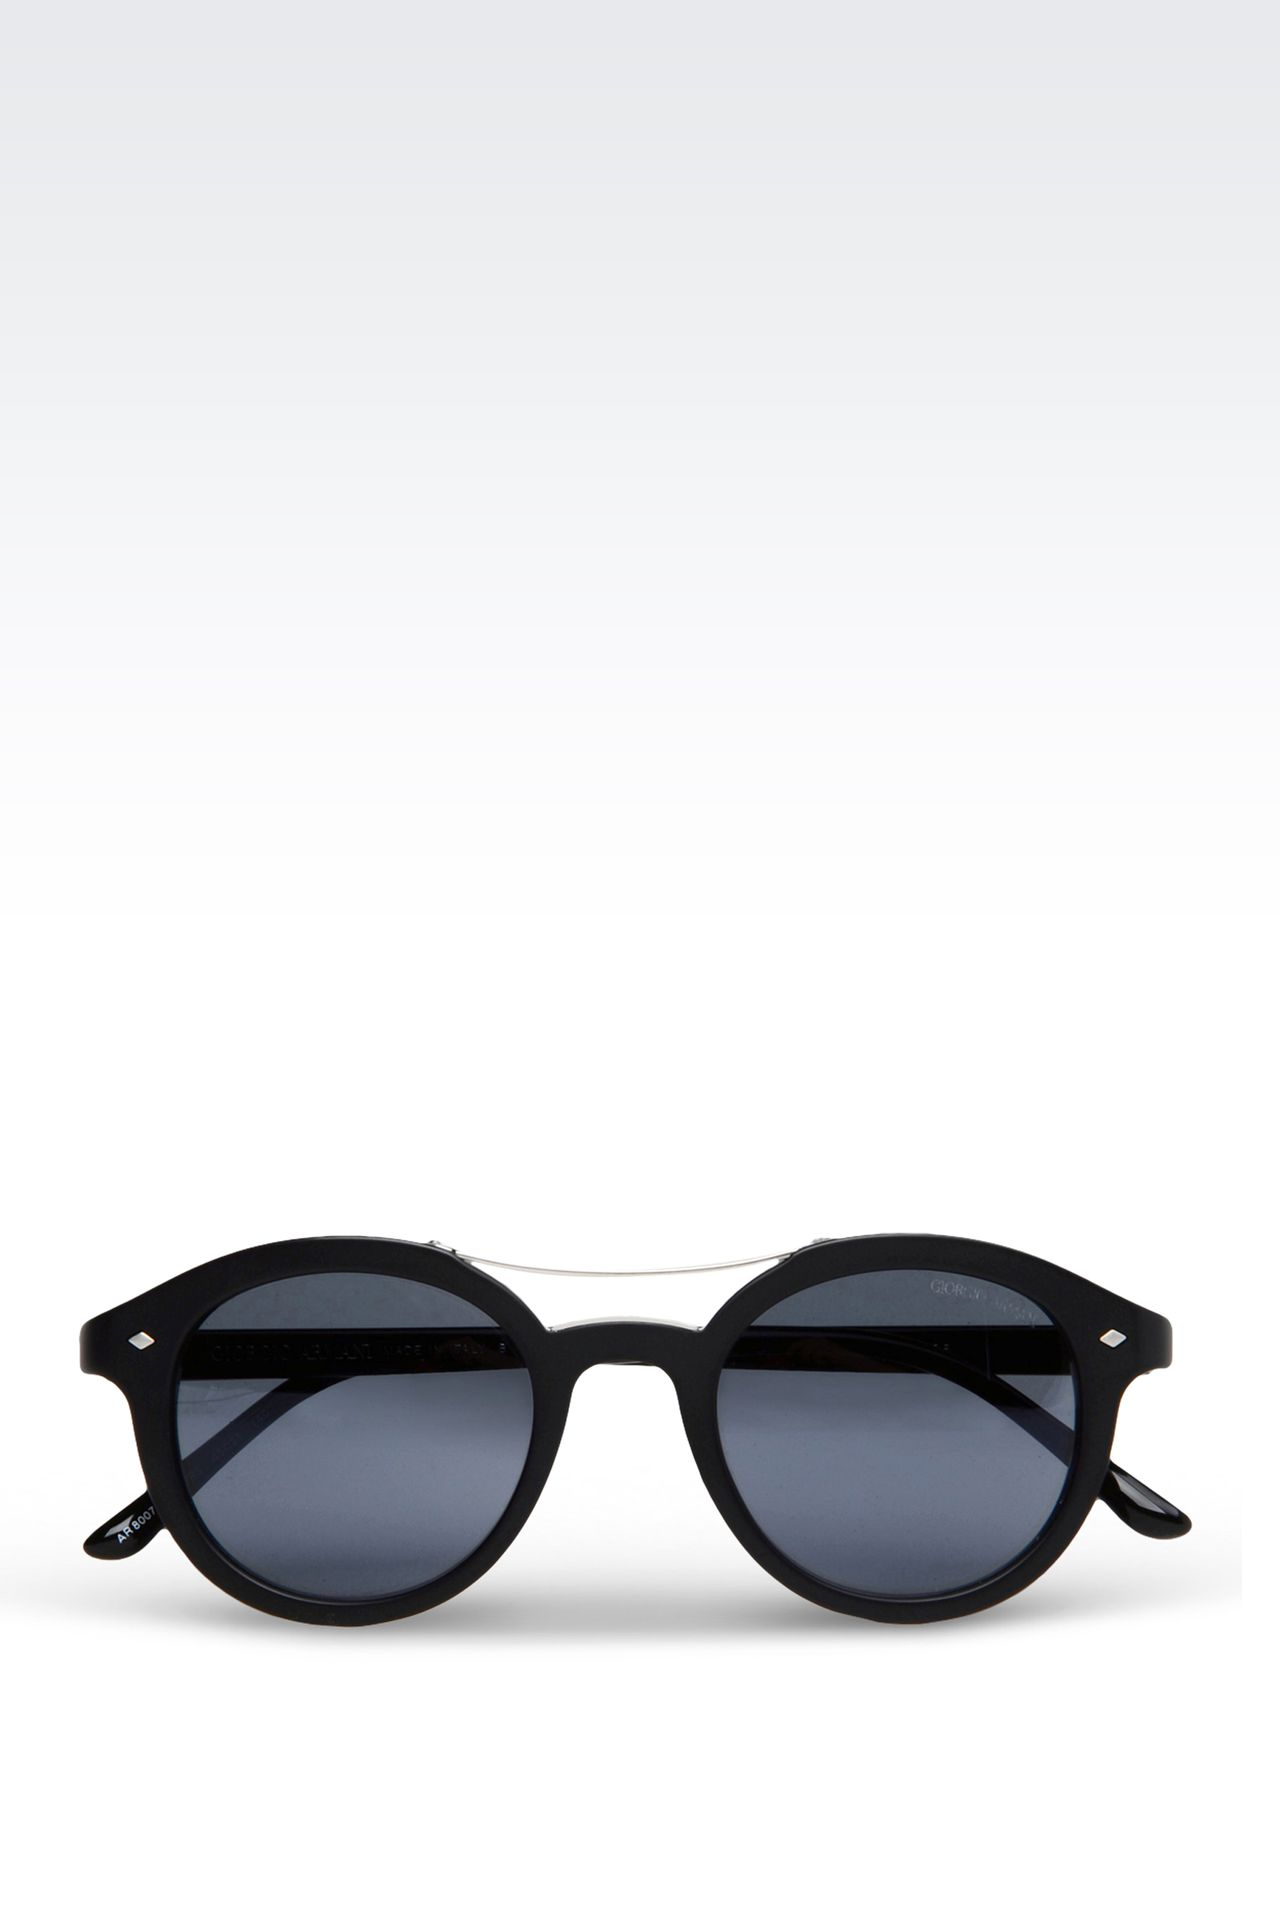 best deals on ray ban sunglasses  life collection